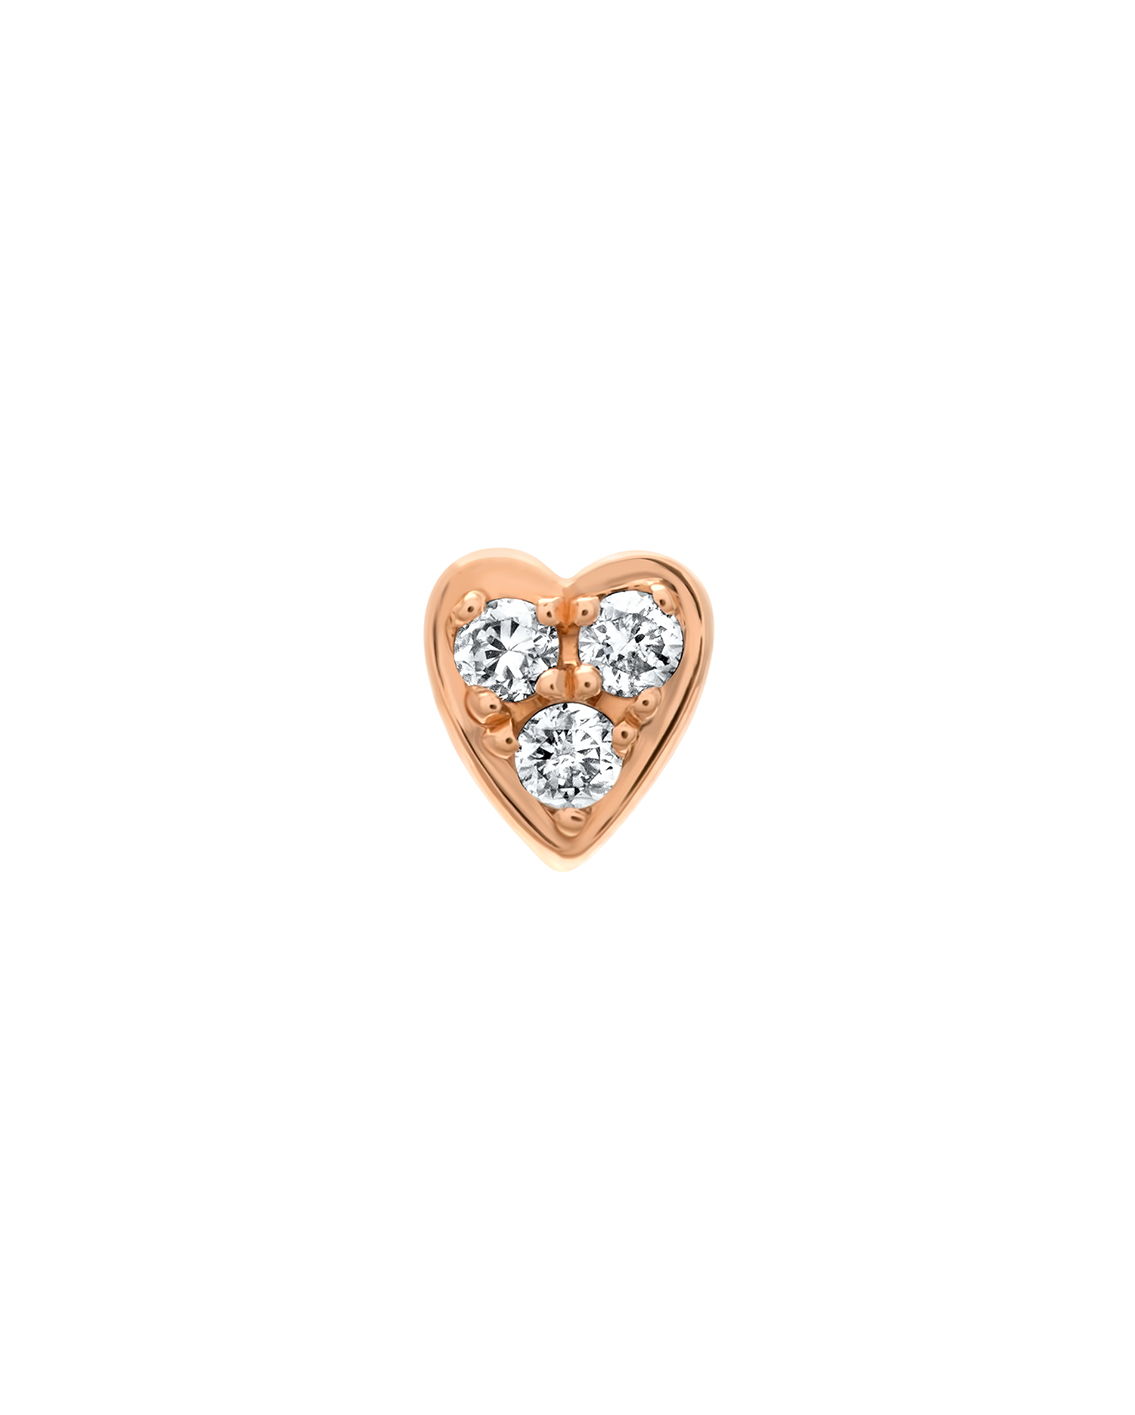 Queen of Hearts Single Diamond Heart Earring by Marmari on curated-crowd.com